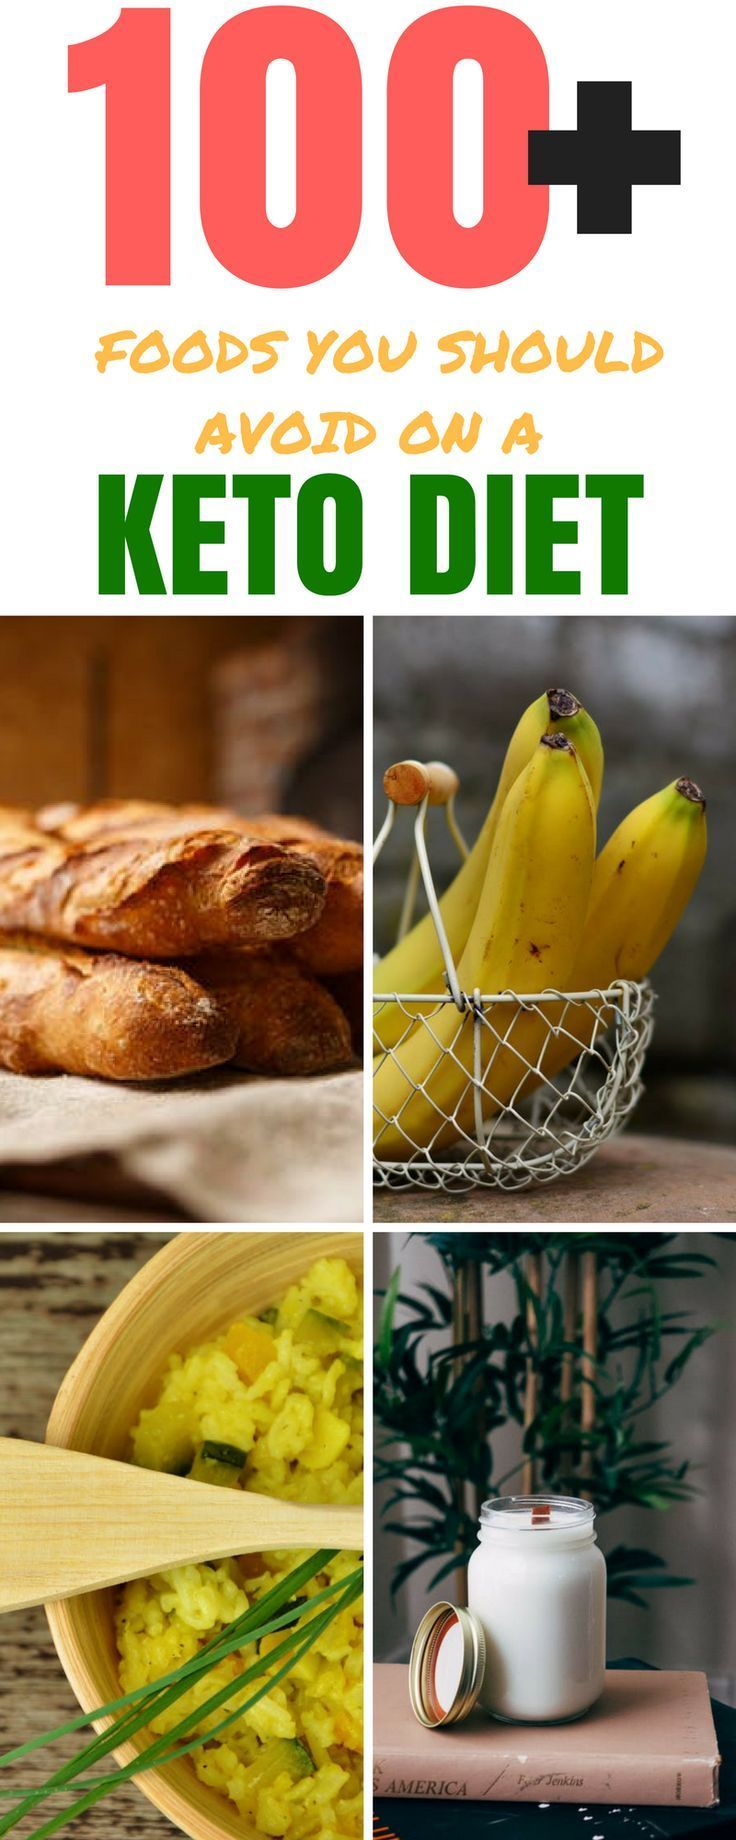 100+ Foods You Should Avoid On a Keto Diet Food